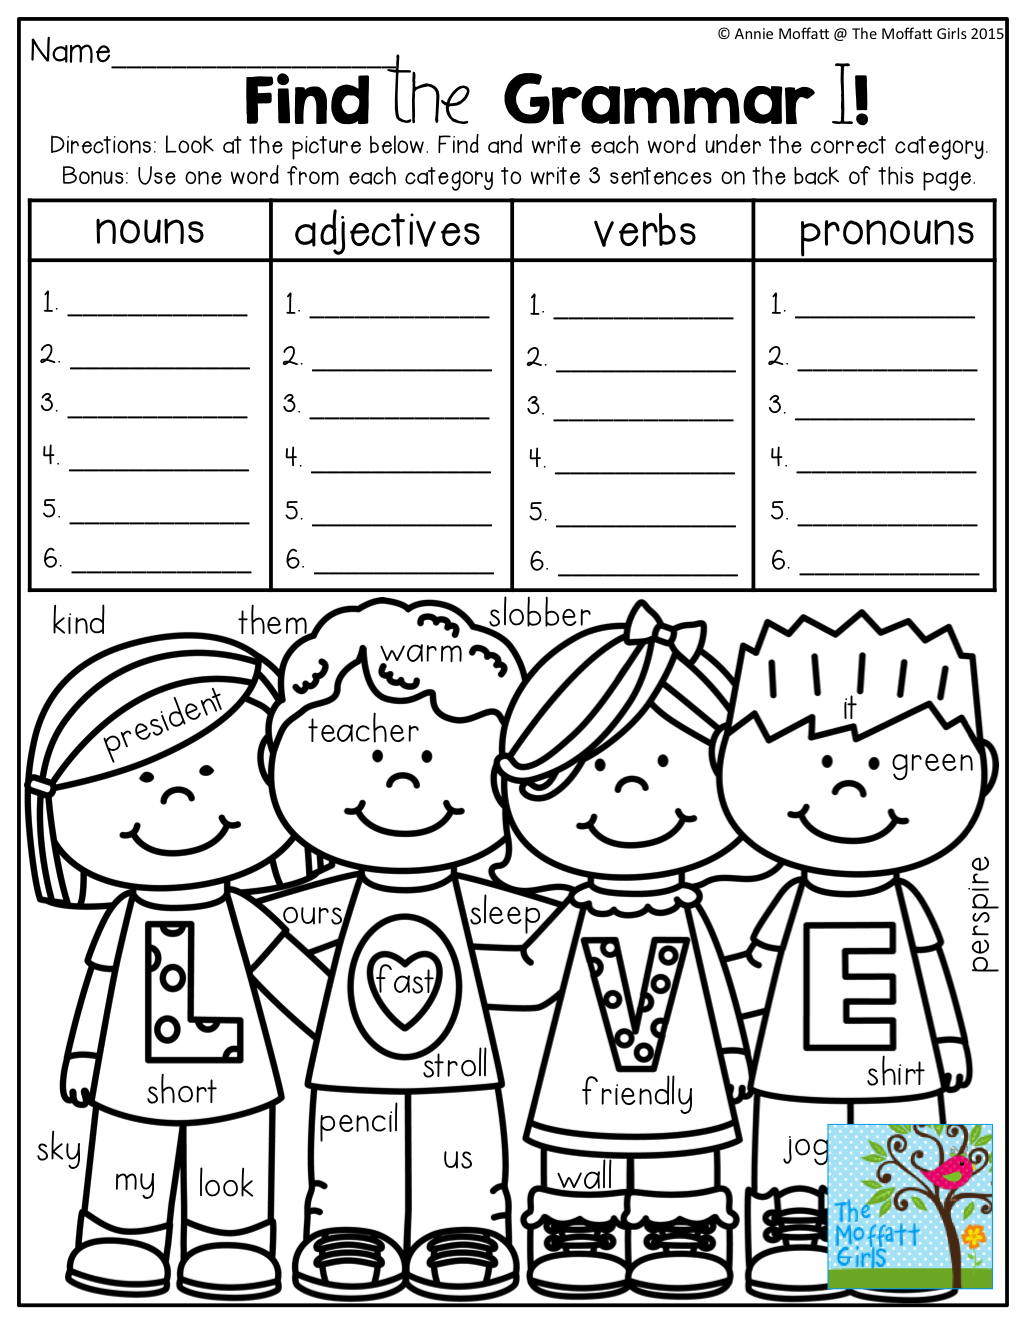 Find The Hidden Nouns Adjectives Verbs And Pronouns Tons Of Fun And Engaging Printables